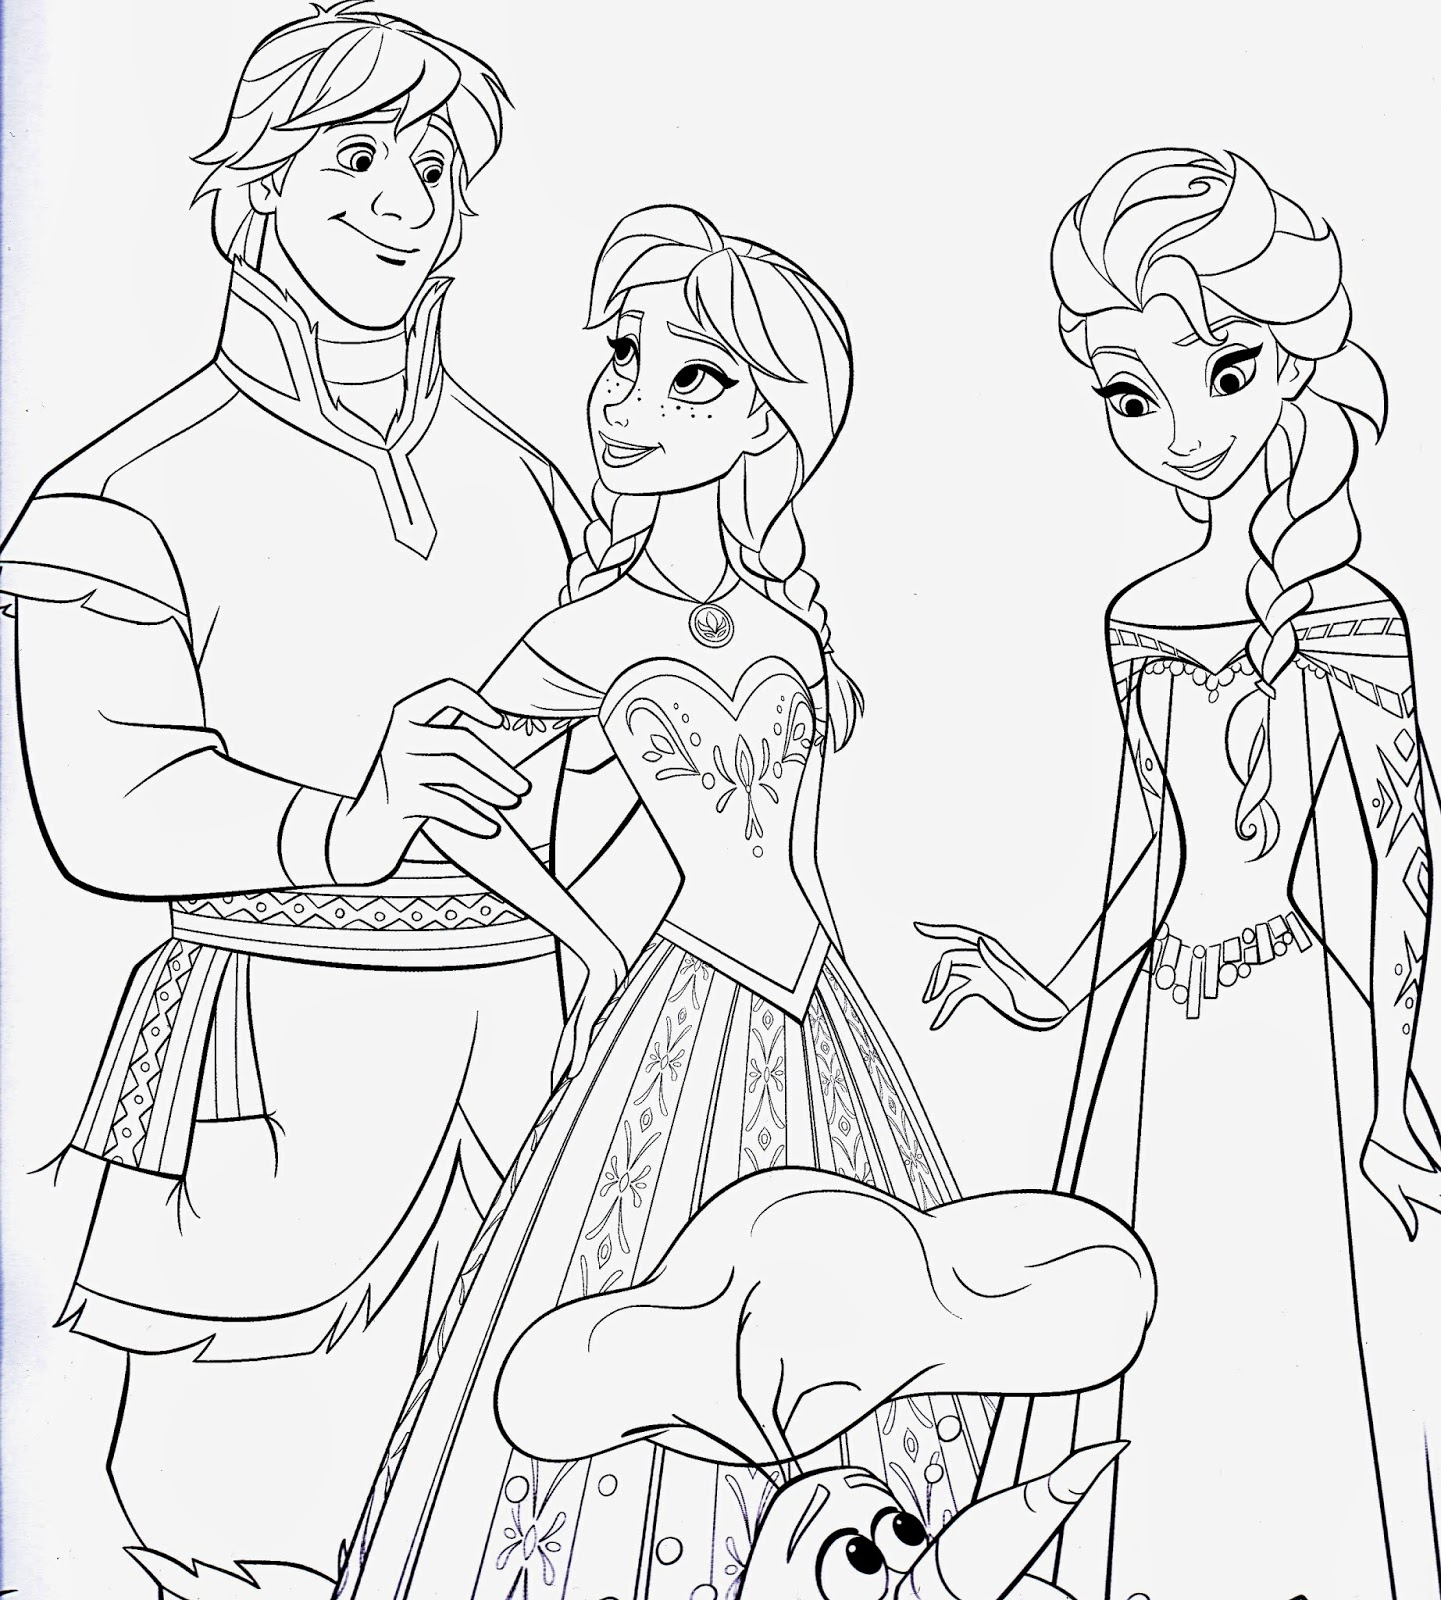 You might also like to download printable paper dolls on my pages for    Peter Pan And Wendy Kiss Coloring Pages